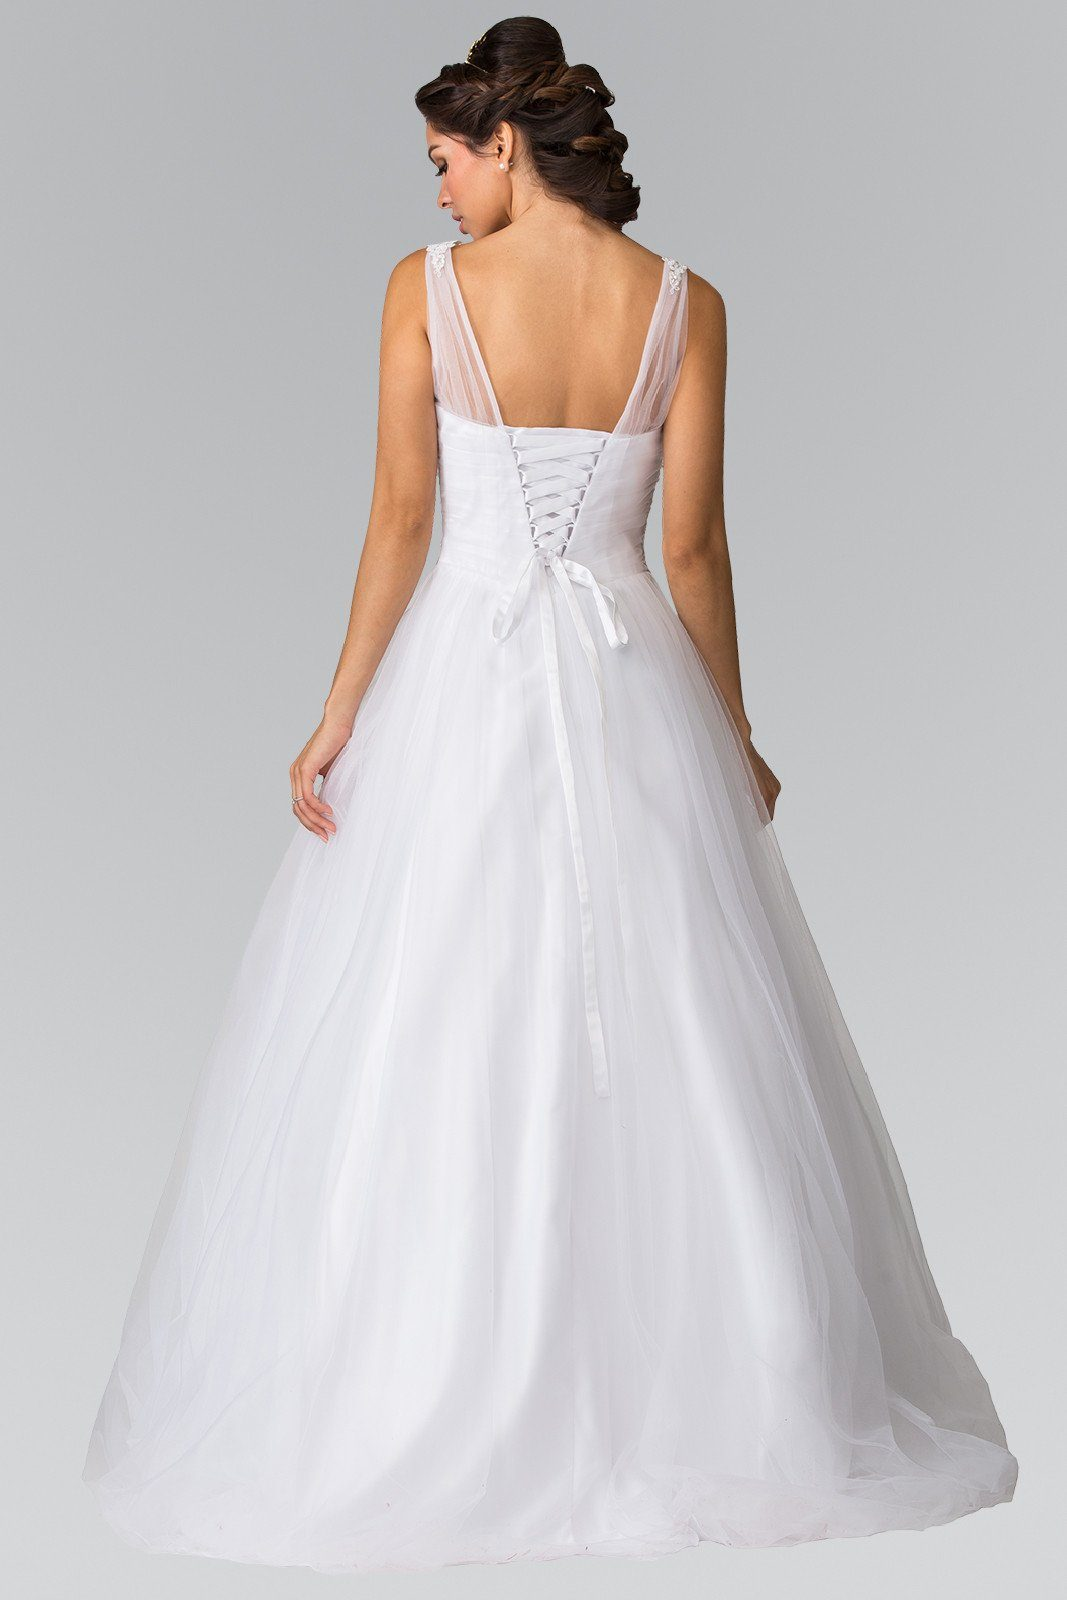 Simple Sweetheart Neckline Tulle Aline Ball Gown Wedding Dress Gl Simply Fab With A Line